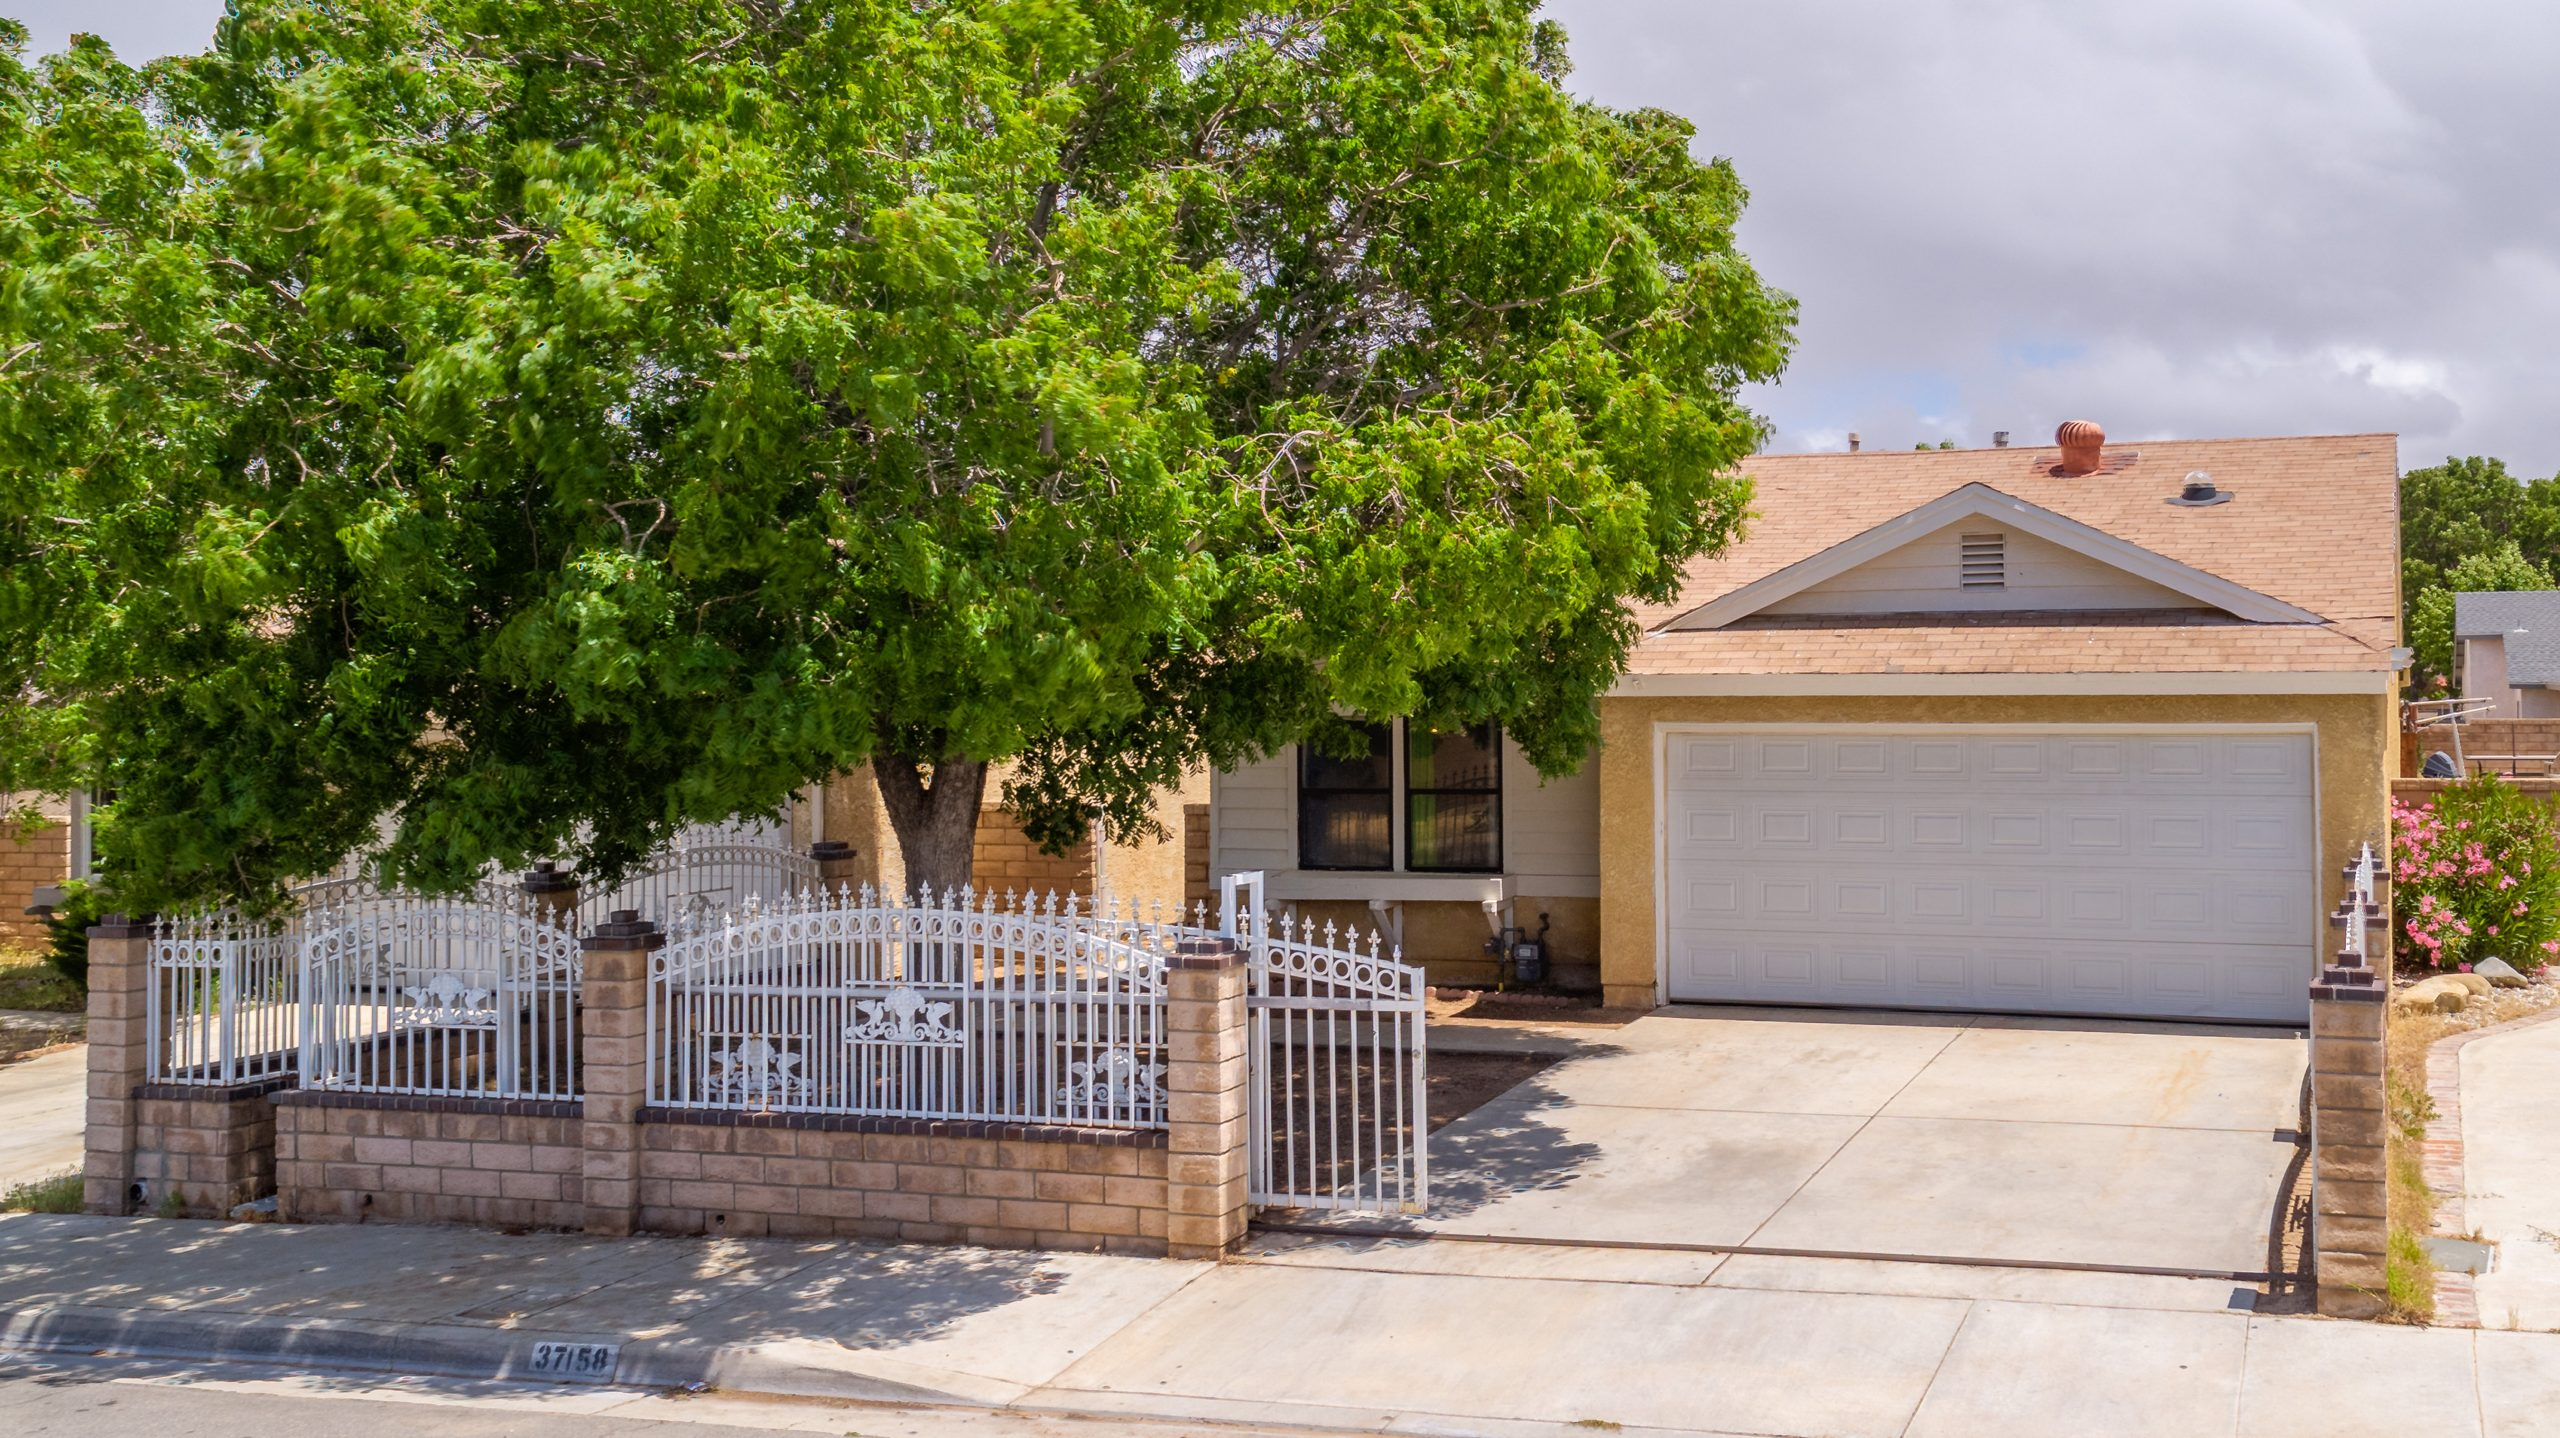 1a Front 37518 29th Street East Palmdale CA